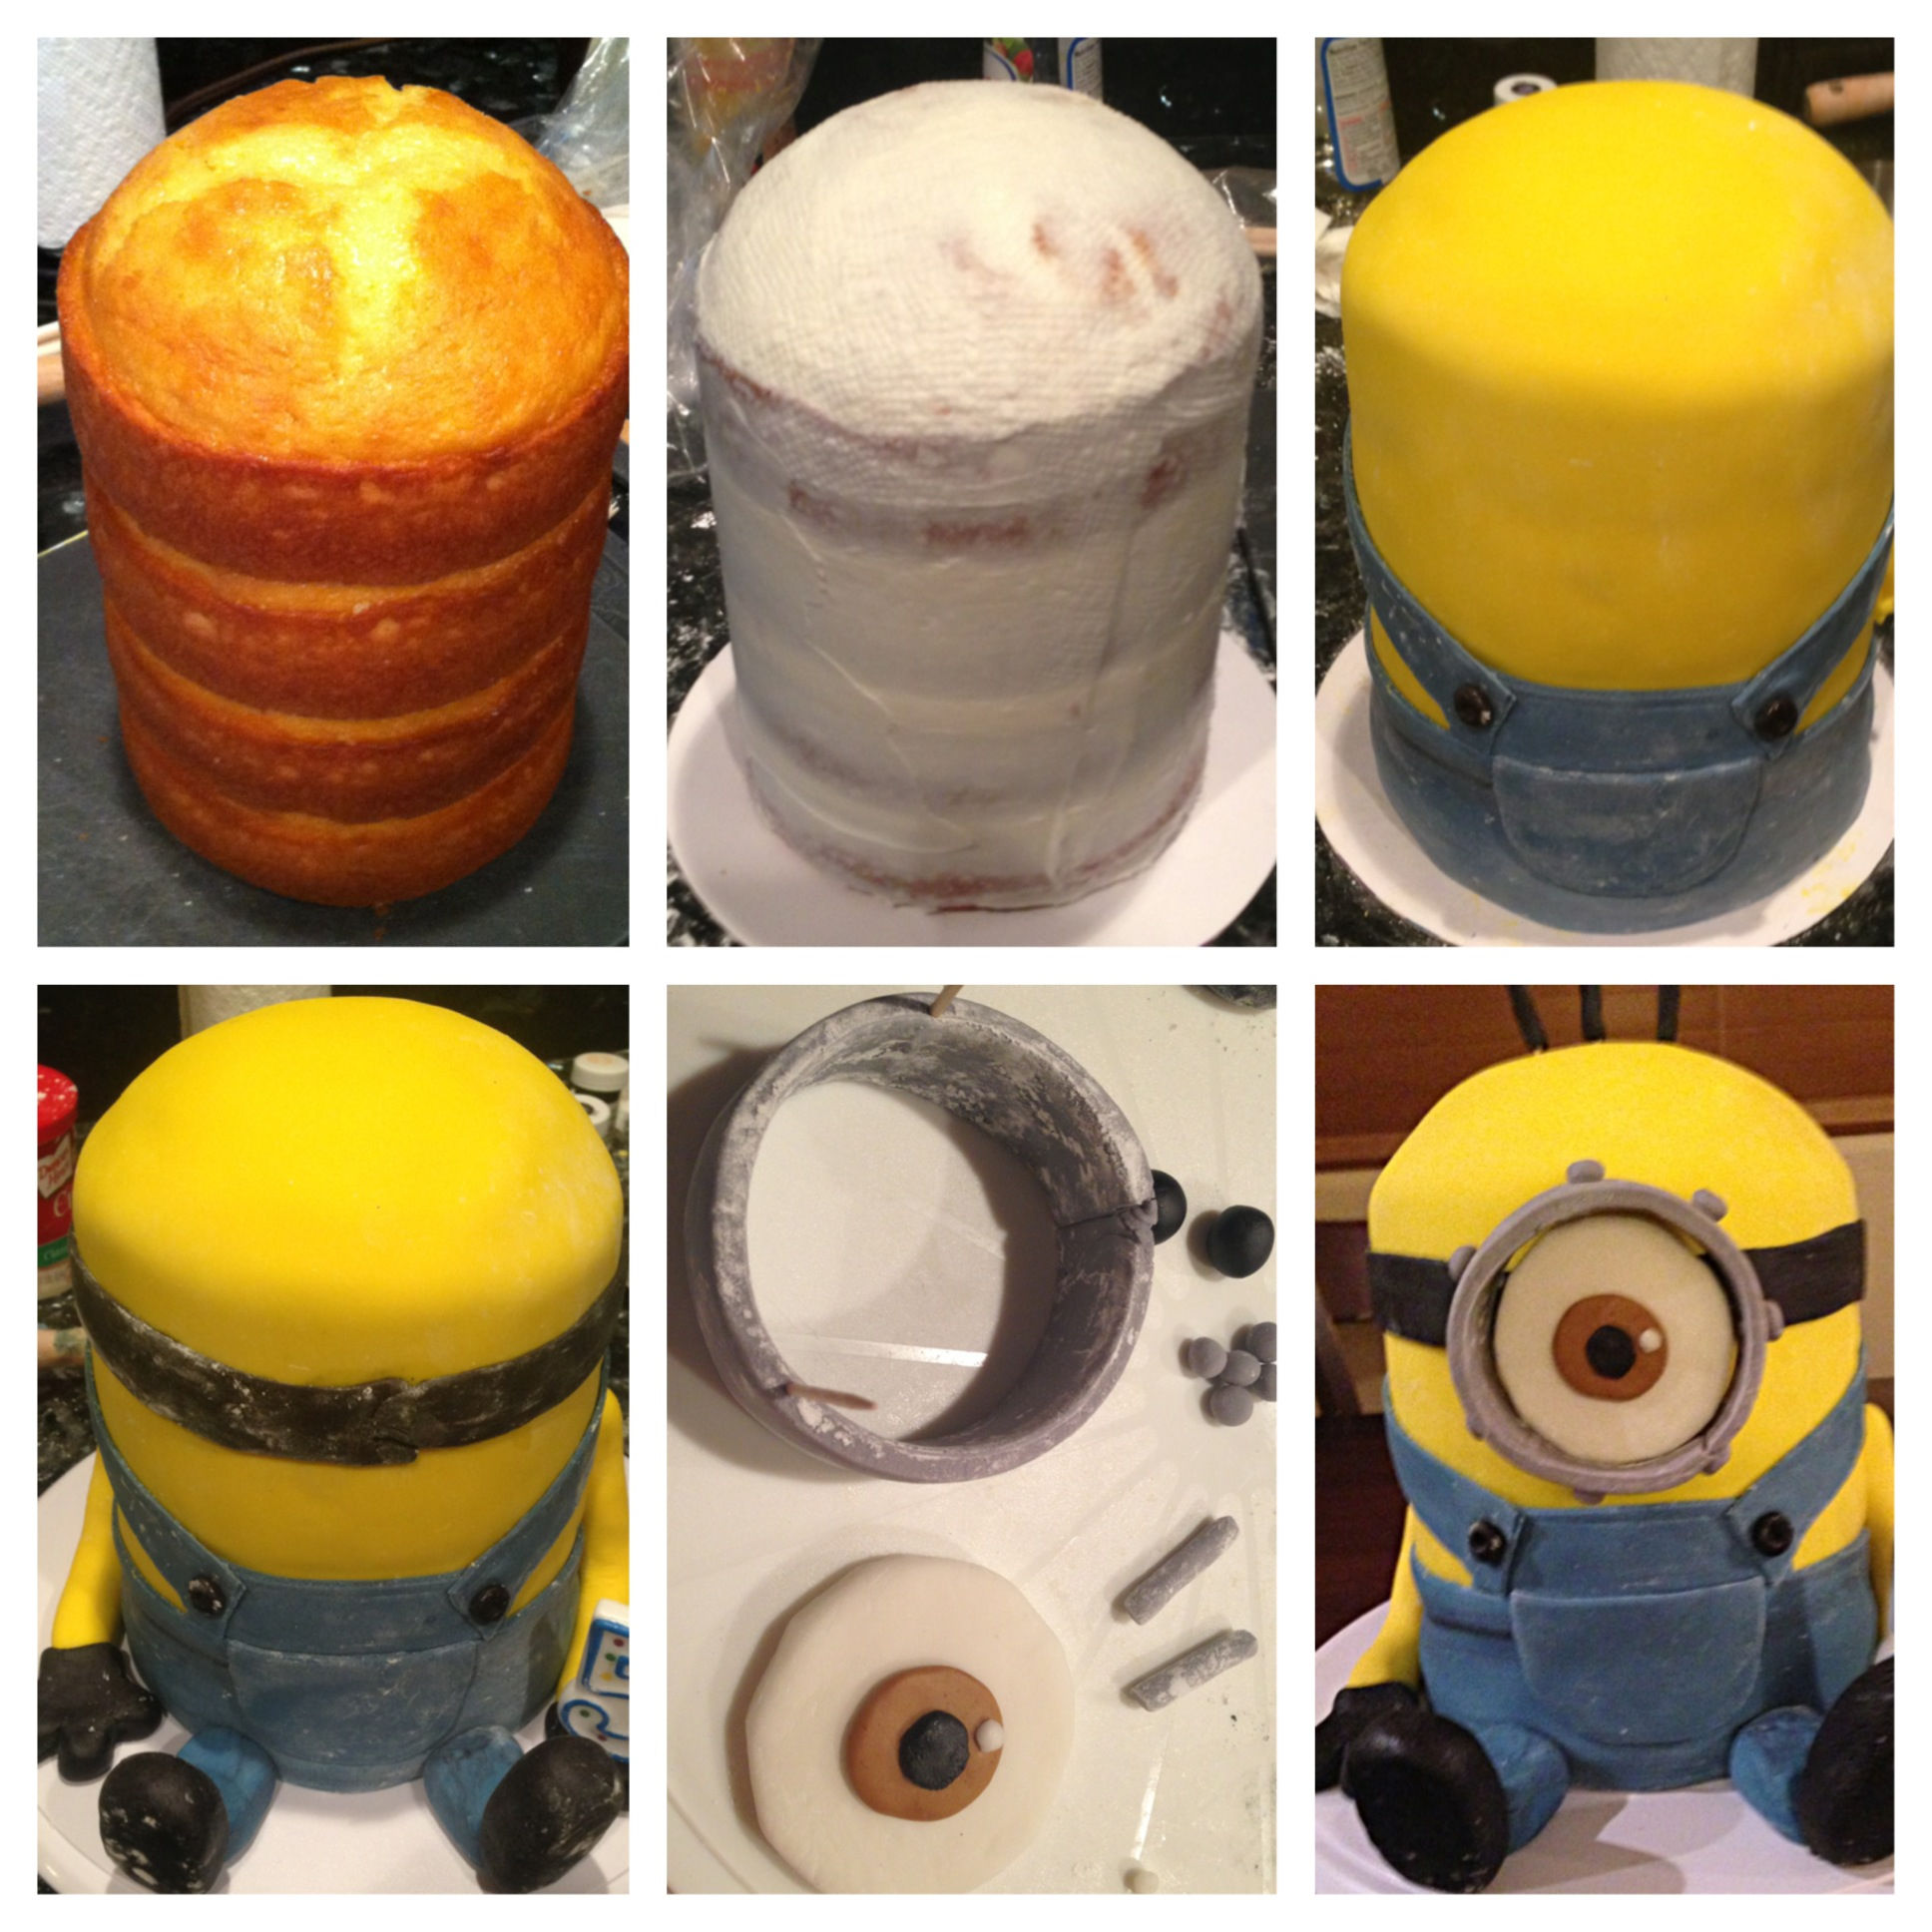 Cake Design How To Make : How To Make A Tall Minion Cake Pictures, Photos, and ...